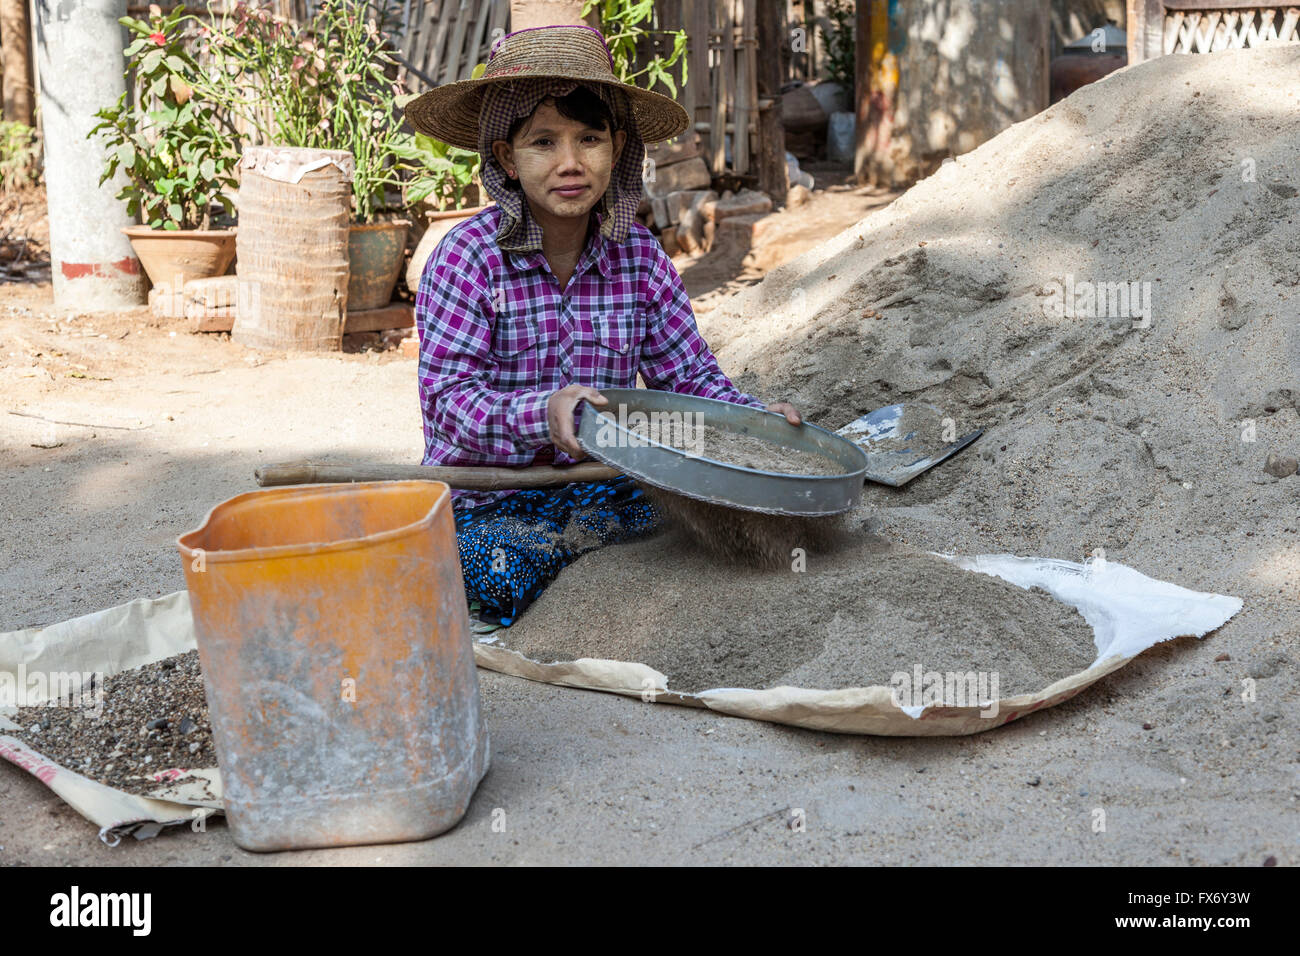 At New Bagan, an apprentice young woman preparing the mortar for workmen on a construction site (Myanmar). - Stock Image